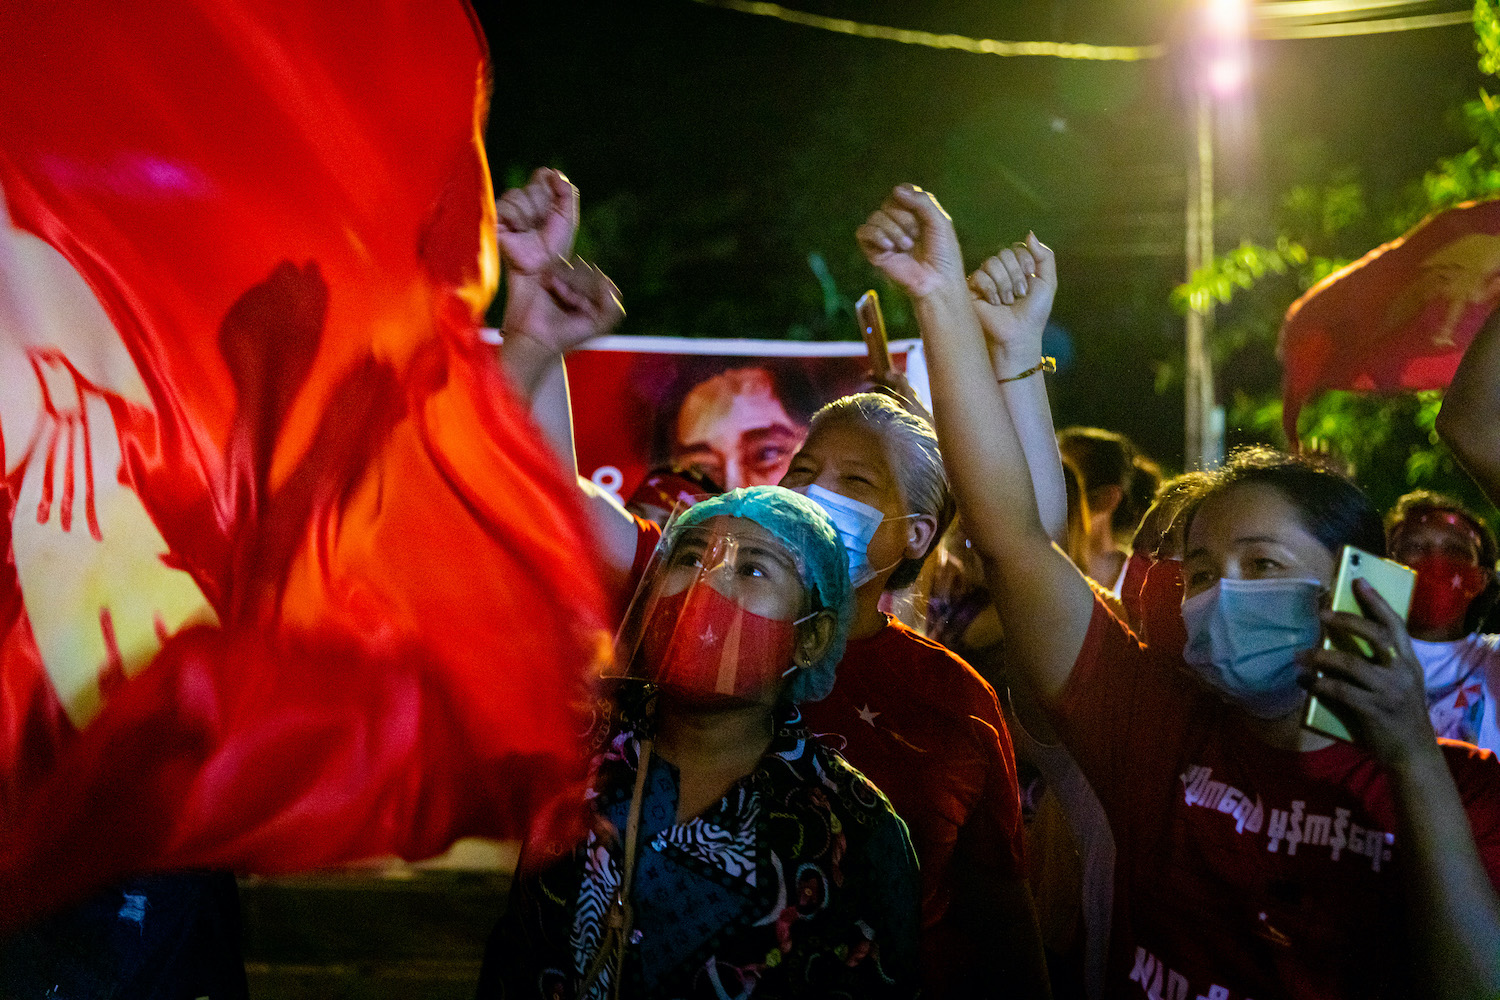 National League for Democracy supporters celebrate in front of the party's head office in Yangon on election night. (Hkun Lat | Frontier)